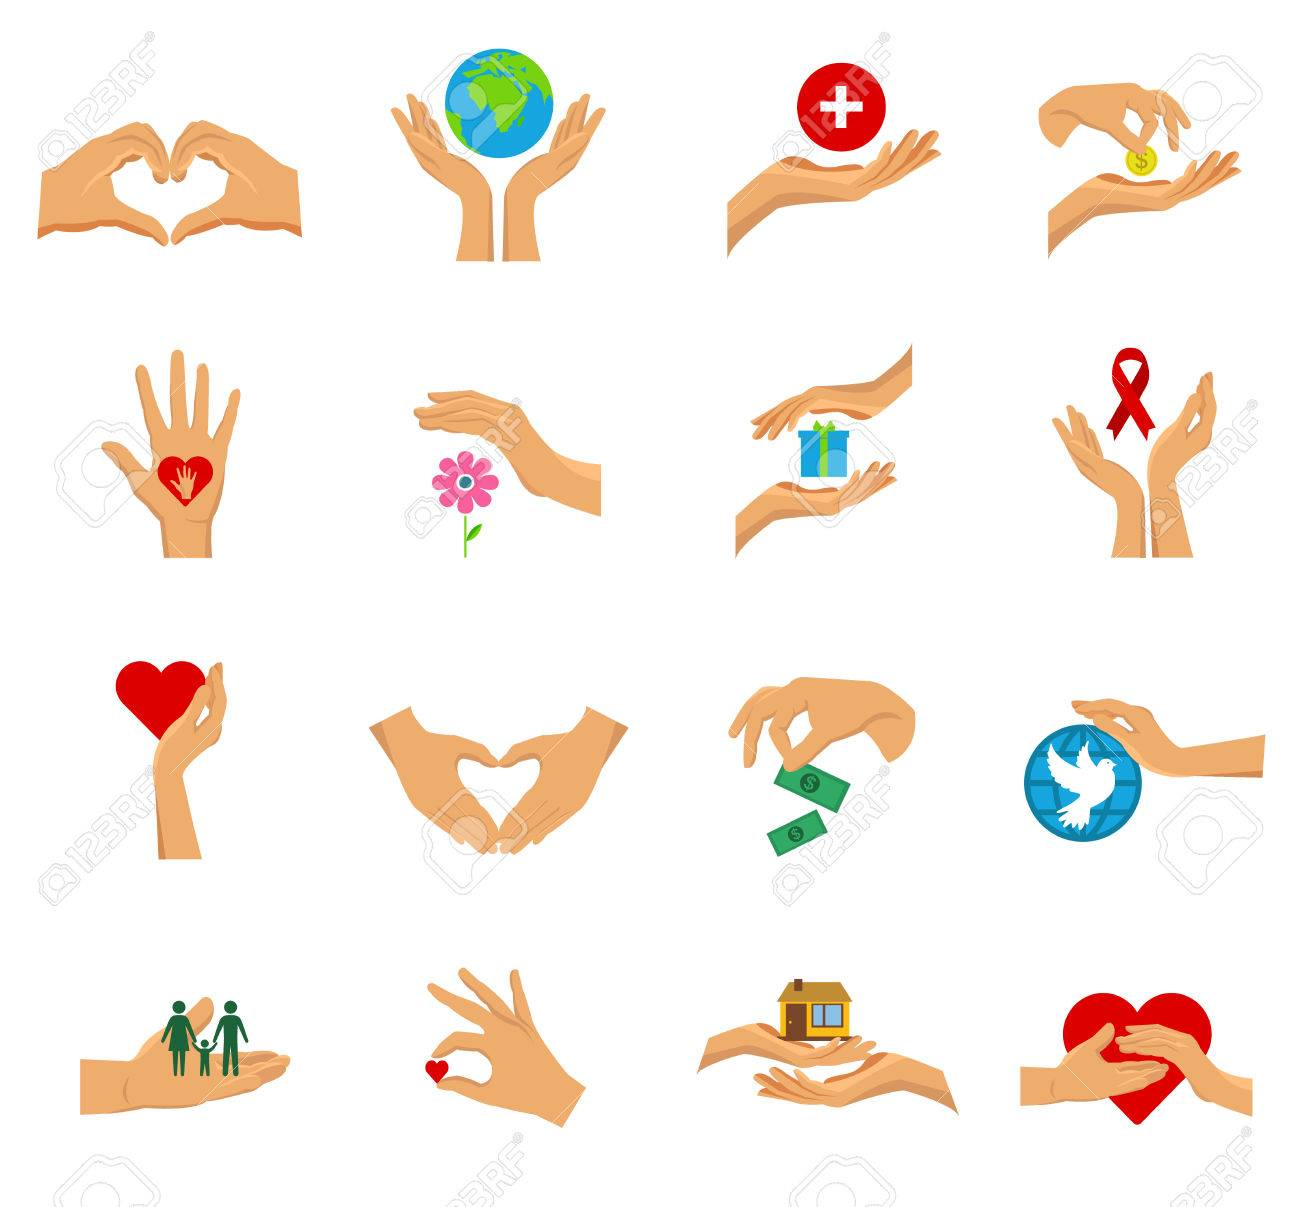 Flat isolated icon set with hands in different gestures symbols flat isolated icon set with hands in different gestures symbols of charity care help and love buycottarizona Images